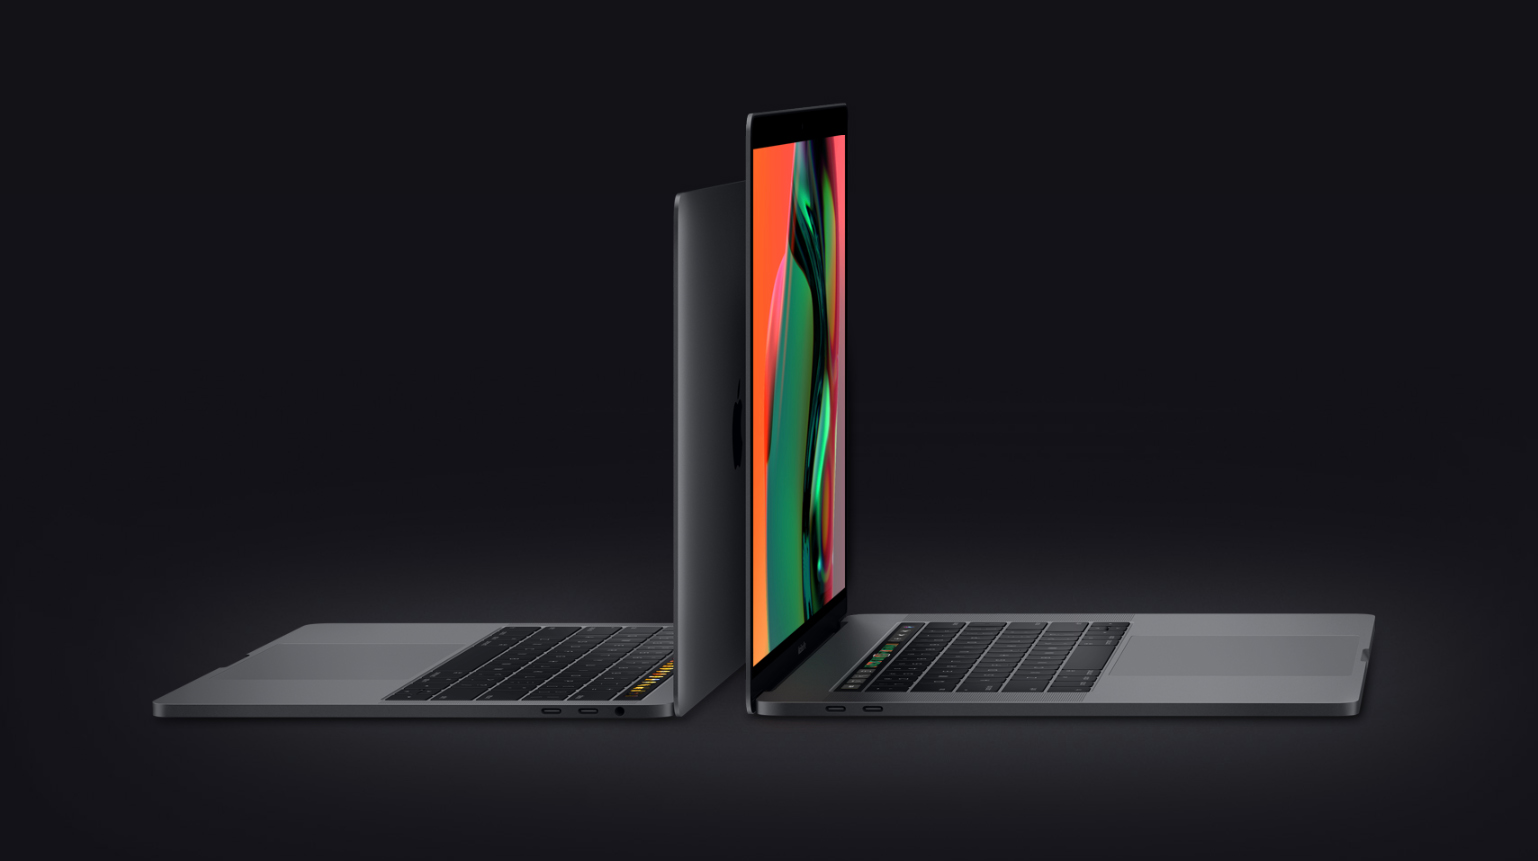 Macbook Pro 2019 Models